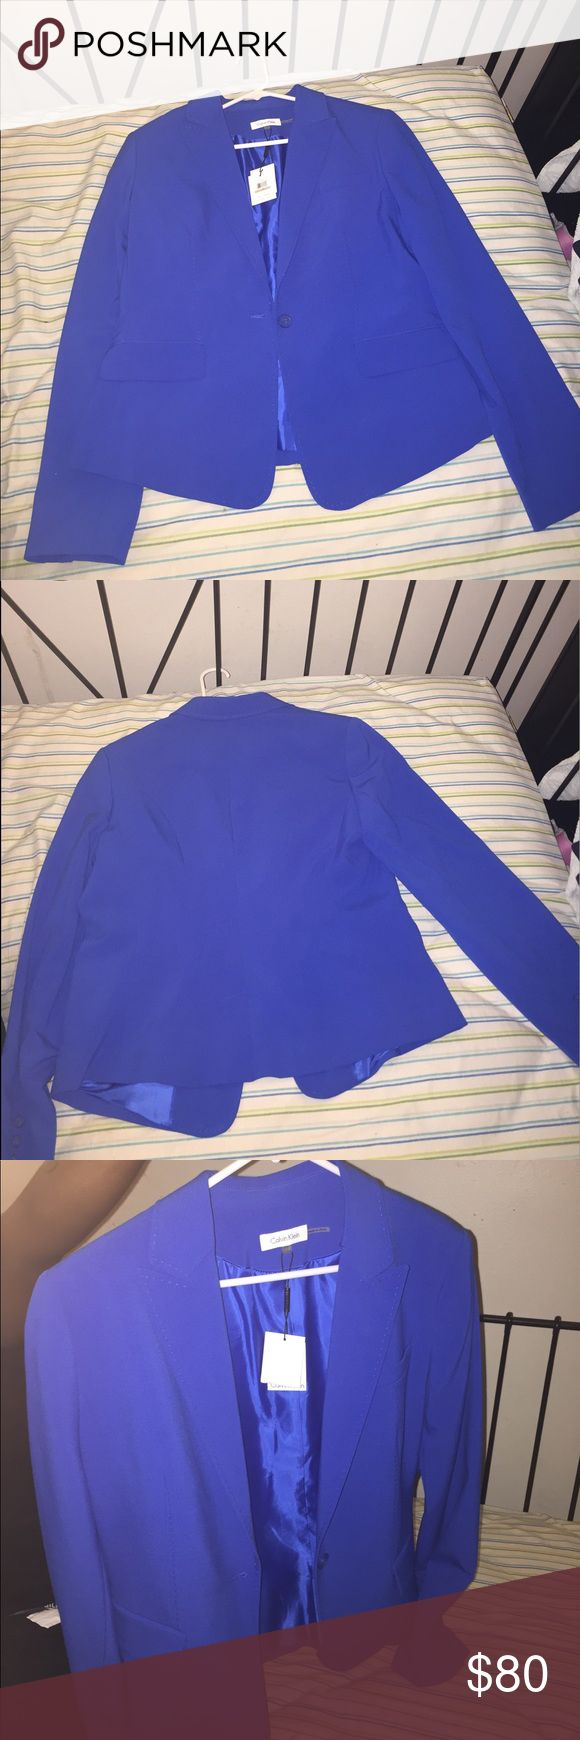 Royal Blue Calvin Klein Blazer BNWT Royal Blue Calvin Klein Blazer. Sat on the hanger for the last 3 years. She seriously needs a good home for someone to rock her. Size 12. Calvin Klein Jackets & Coats Blazers